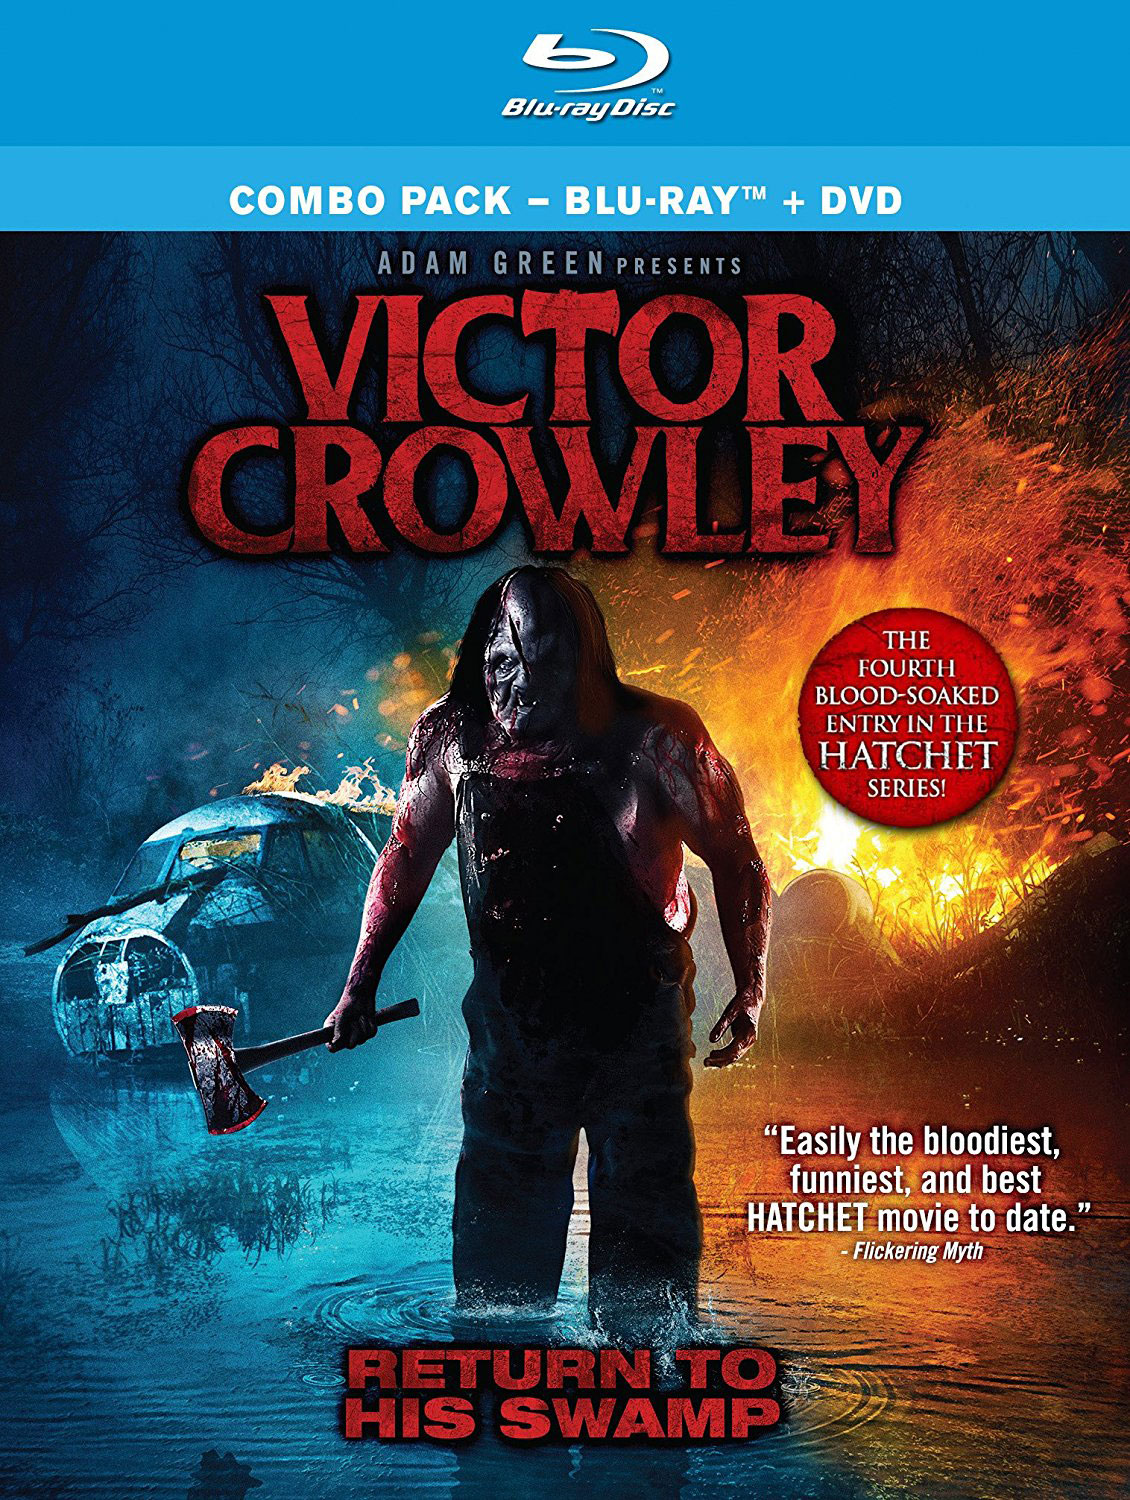 victor crowley win a copy of the blu ray along with a. Black Bedroom Furniture Sets. Home Design Ideas